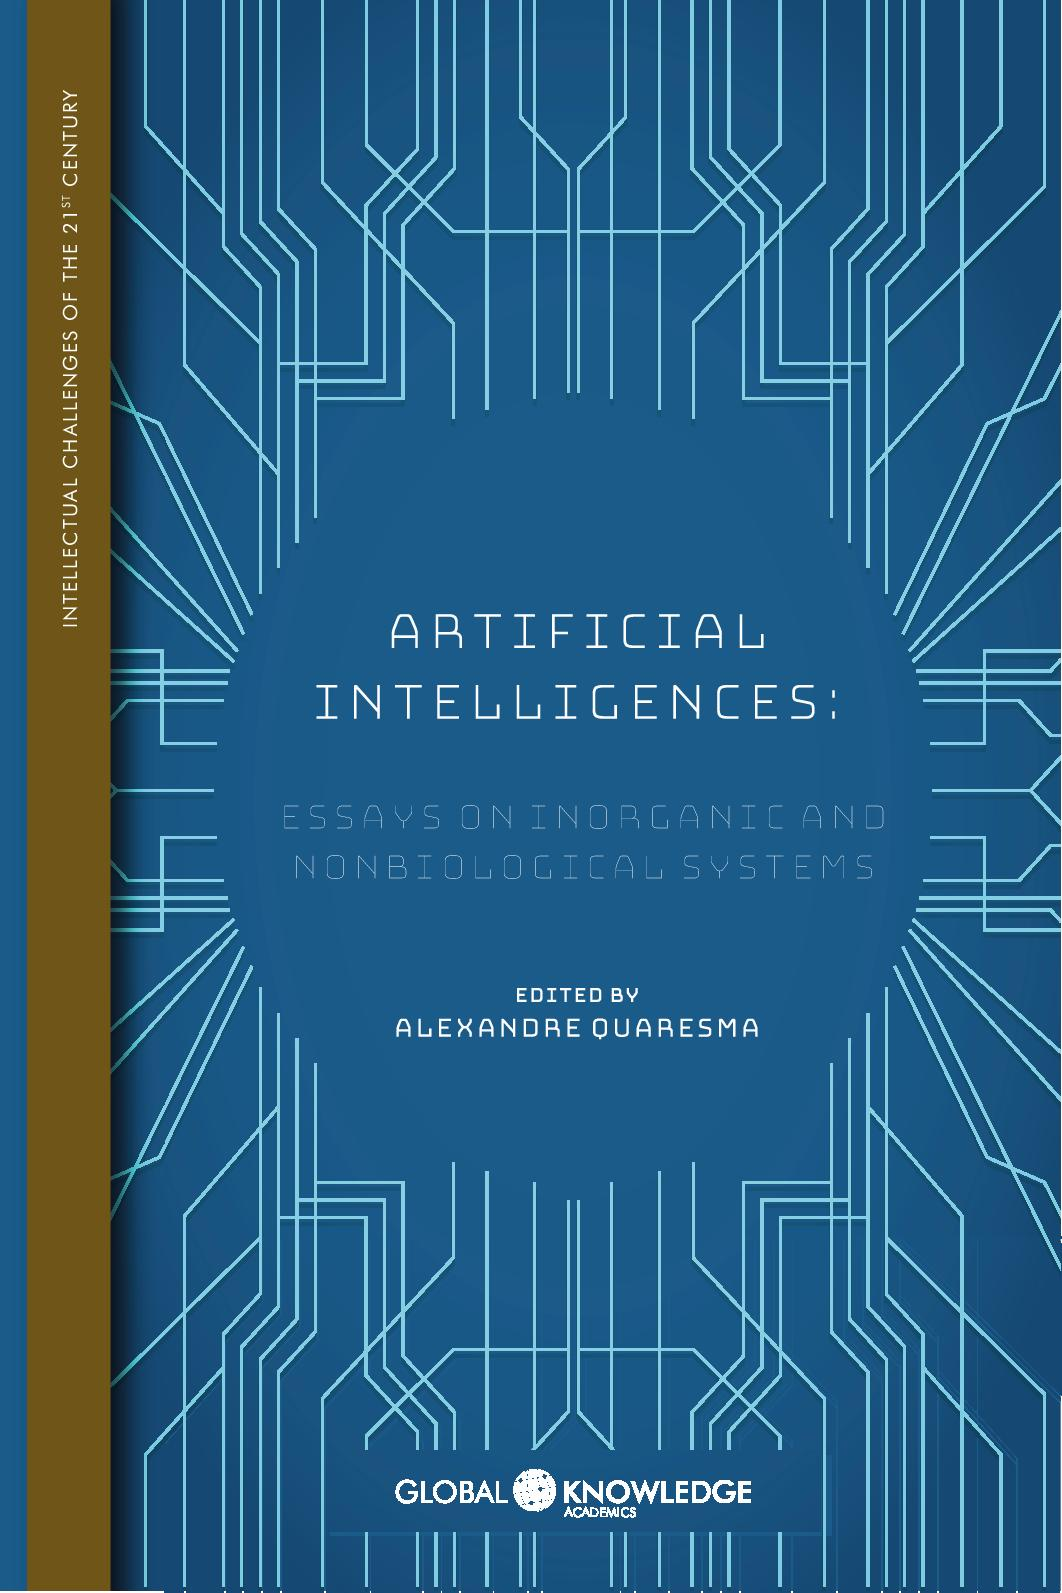 Calaméo - Artificial Intelligences  Essays on inorganic and nonbiological  systems 743456754b